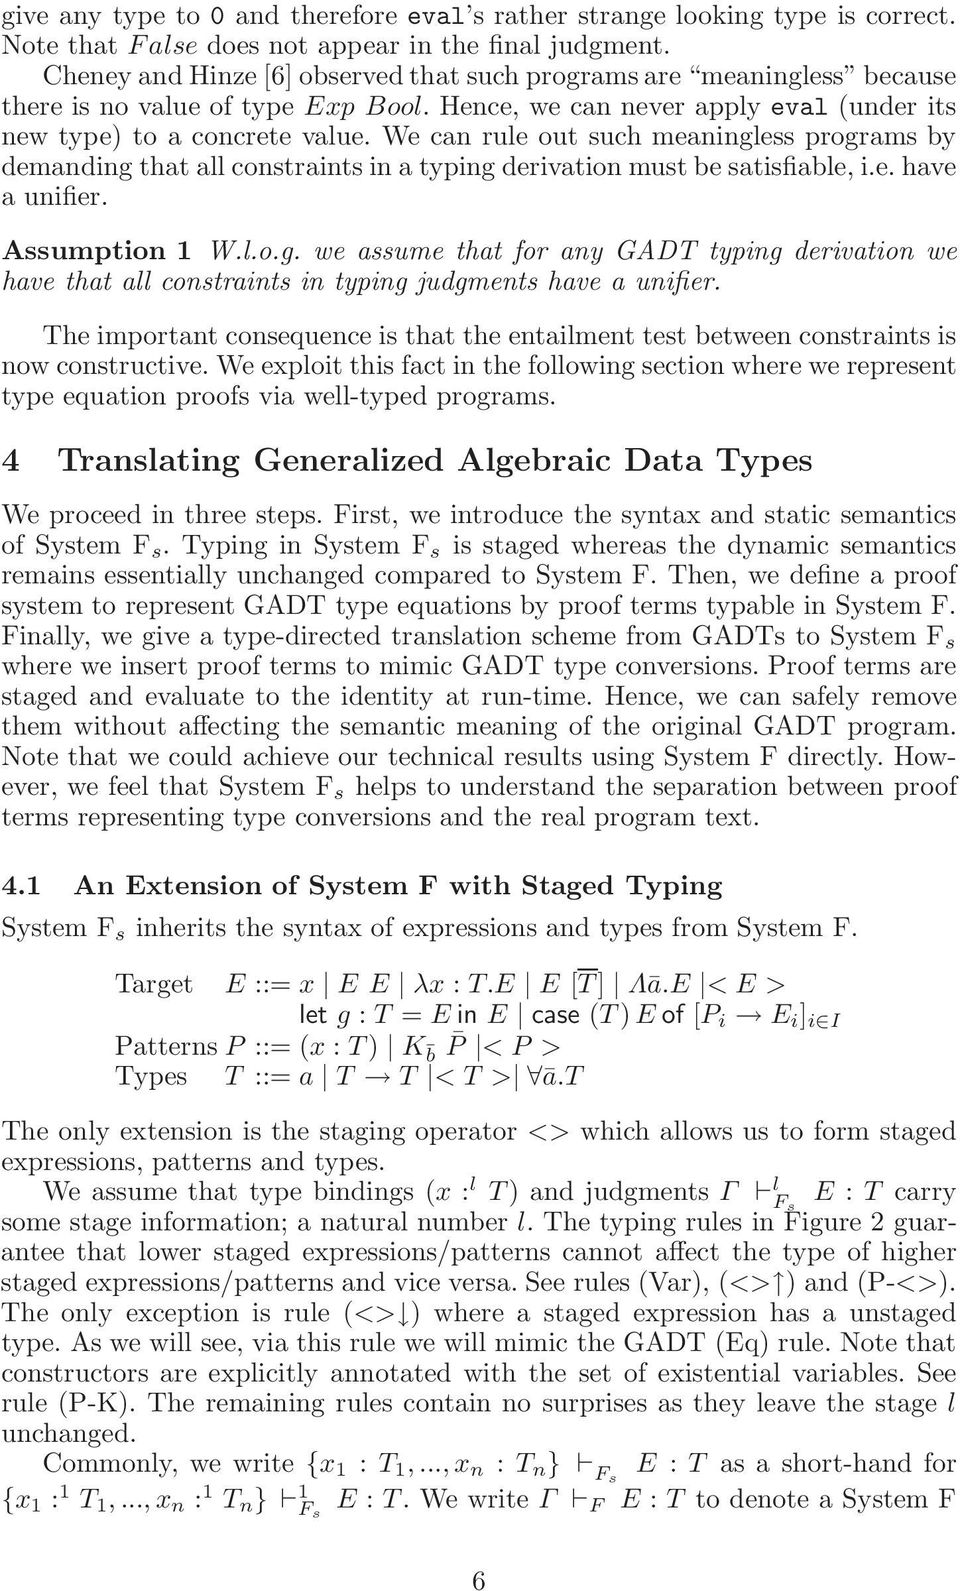 We can rule out such meaningless programs by demanding that all constraints in a typing derivation must be satisfiable, i.e. have a unifier. Assumption 1 W.l.o.g. we assume that for any GADT typing derivation we have that all constraints in typing judgments have a unifier.